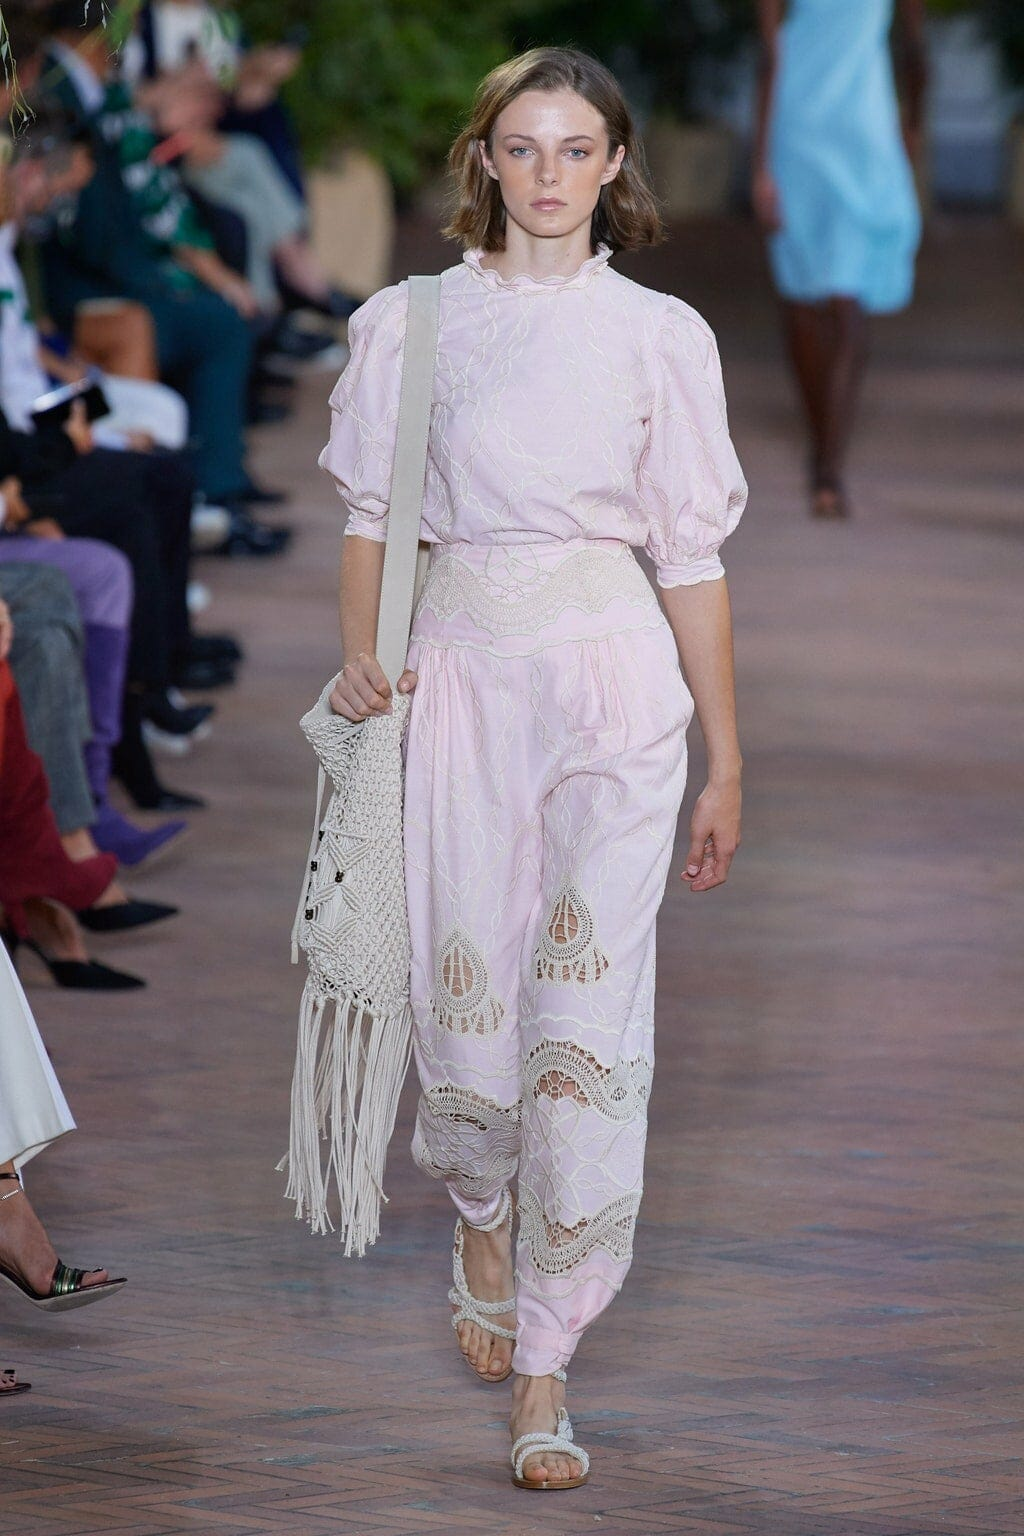 Alberta Ferretti Spring Summer 2021 Milan. RUNWAY MAGAZINE ® Collections. RUNWAY NOW / RUNWAY NEW